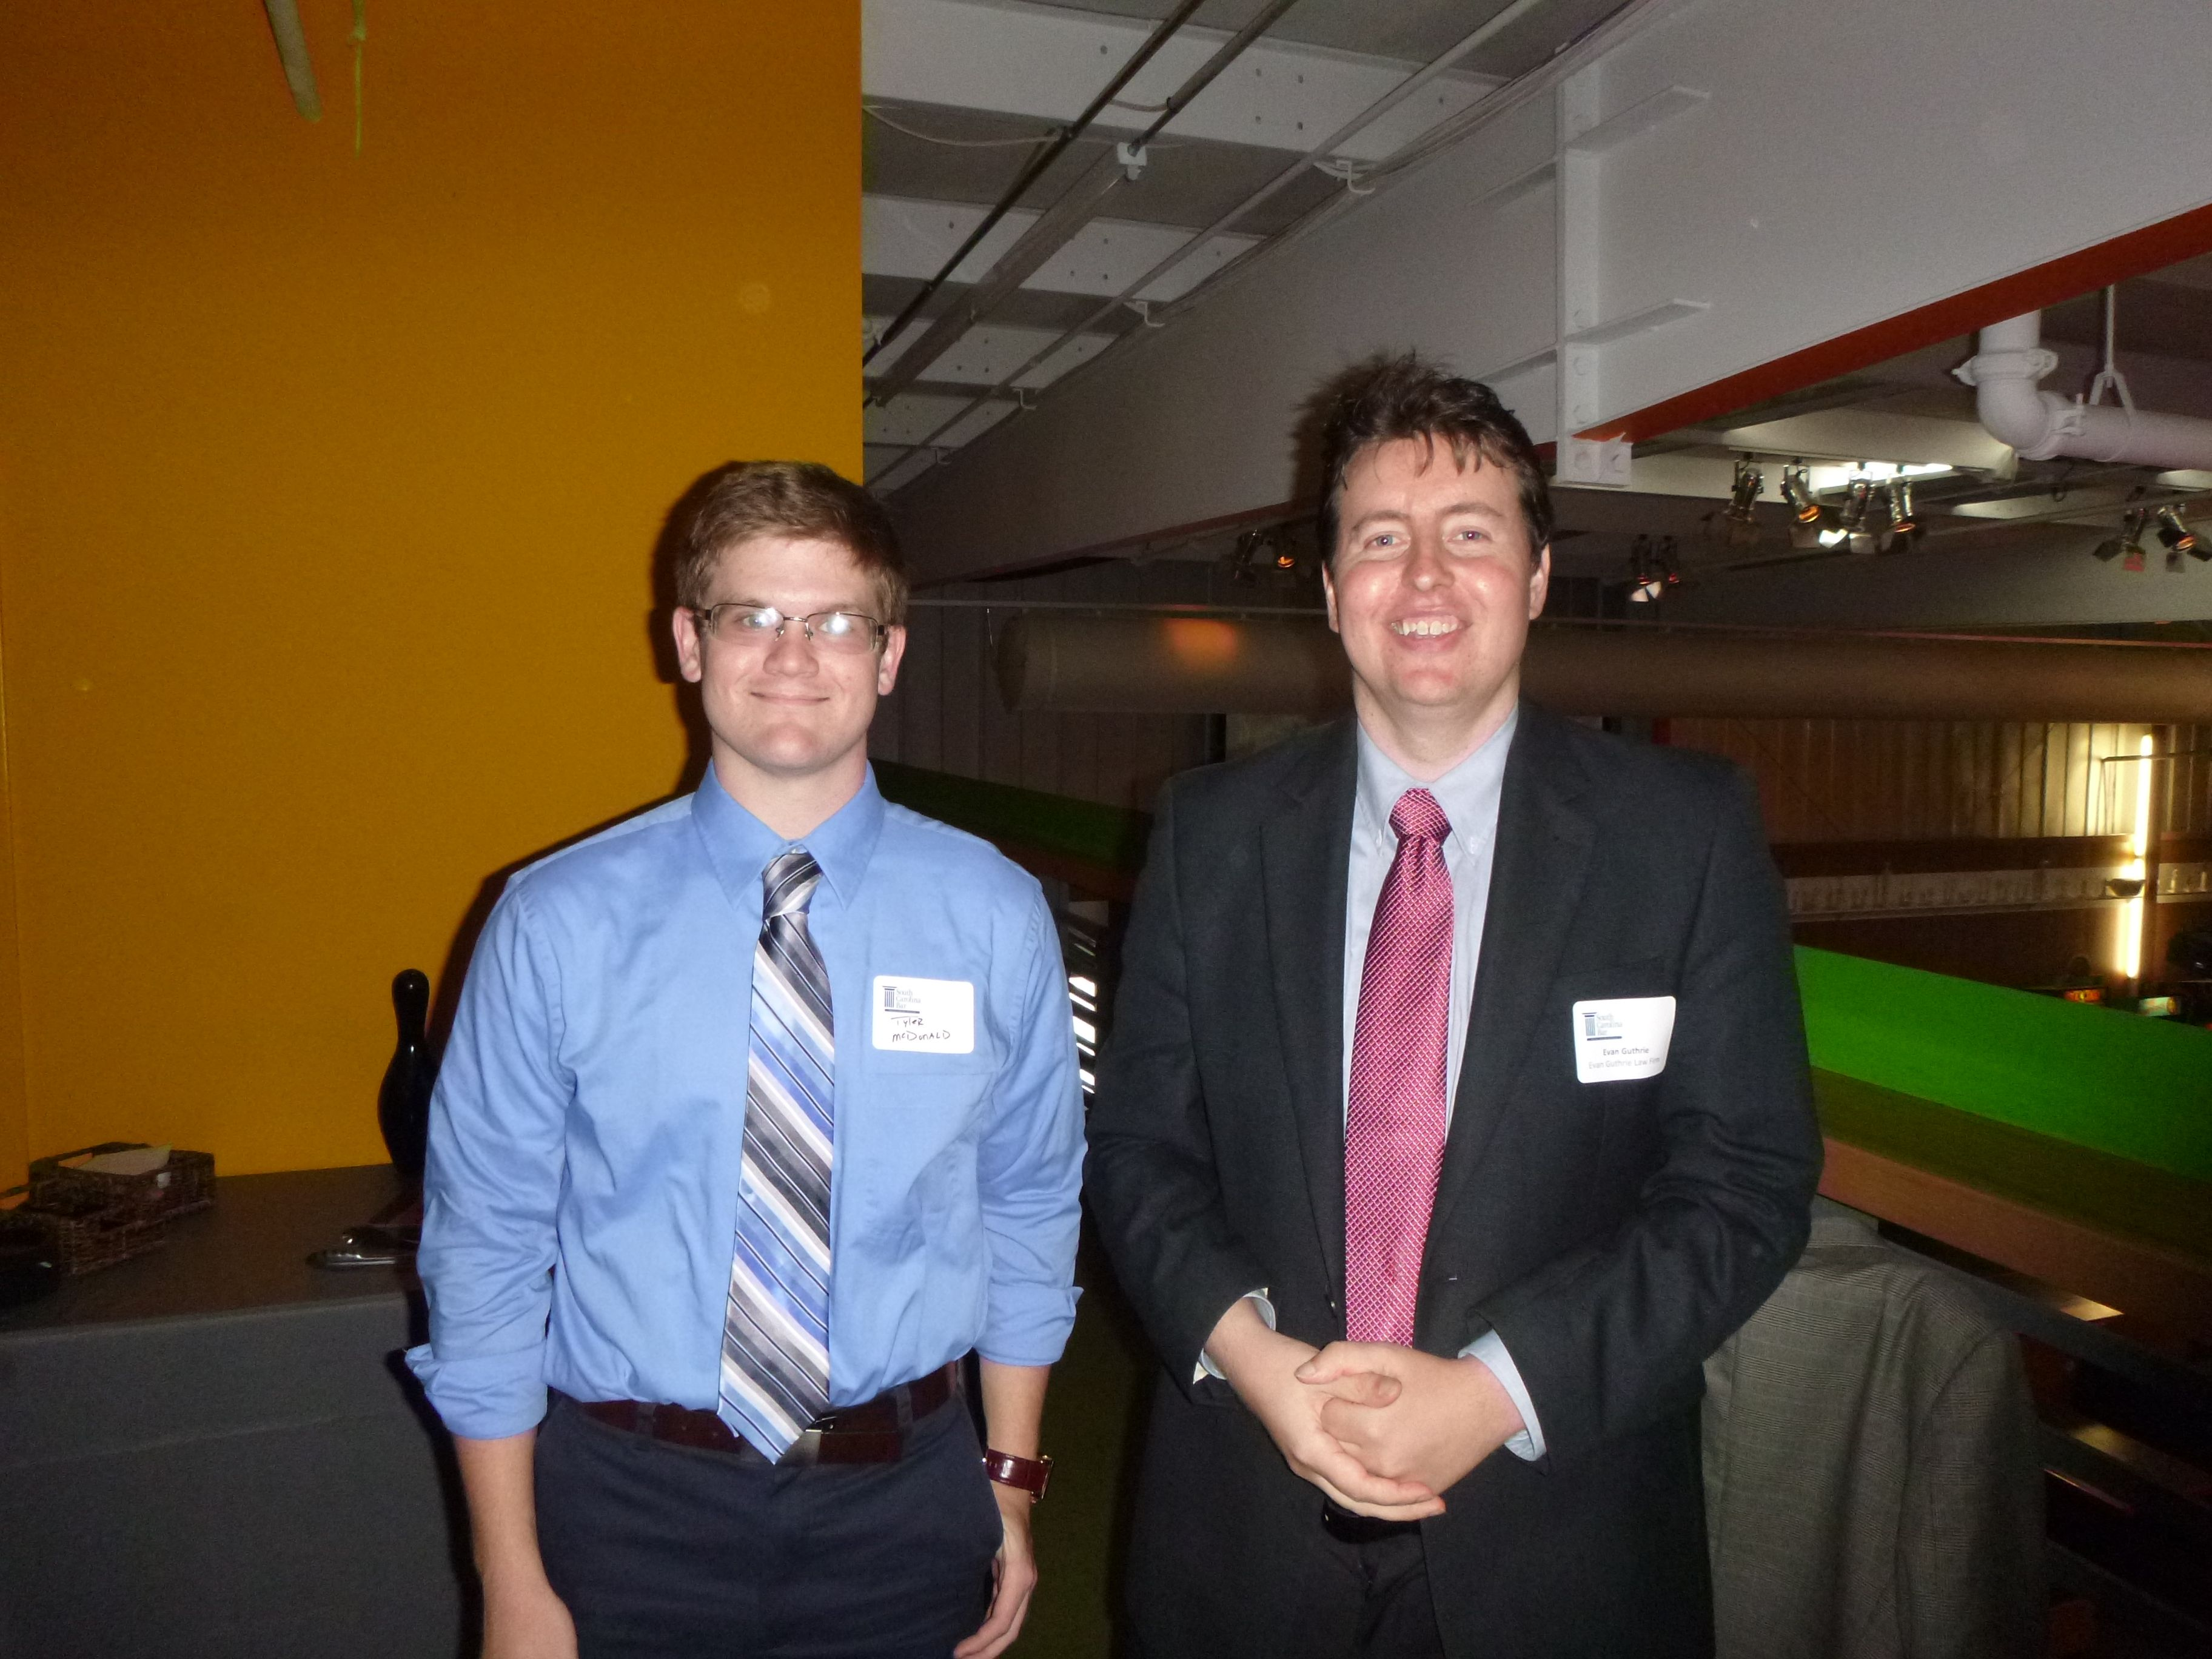 Attorney Evan Guthrie With Tyler Mcdonald Law Clerk At Evan Guthrie Law Firm At The South Carolina Bar Young Lawyers Division Profes New Law Law Firm Guthrie